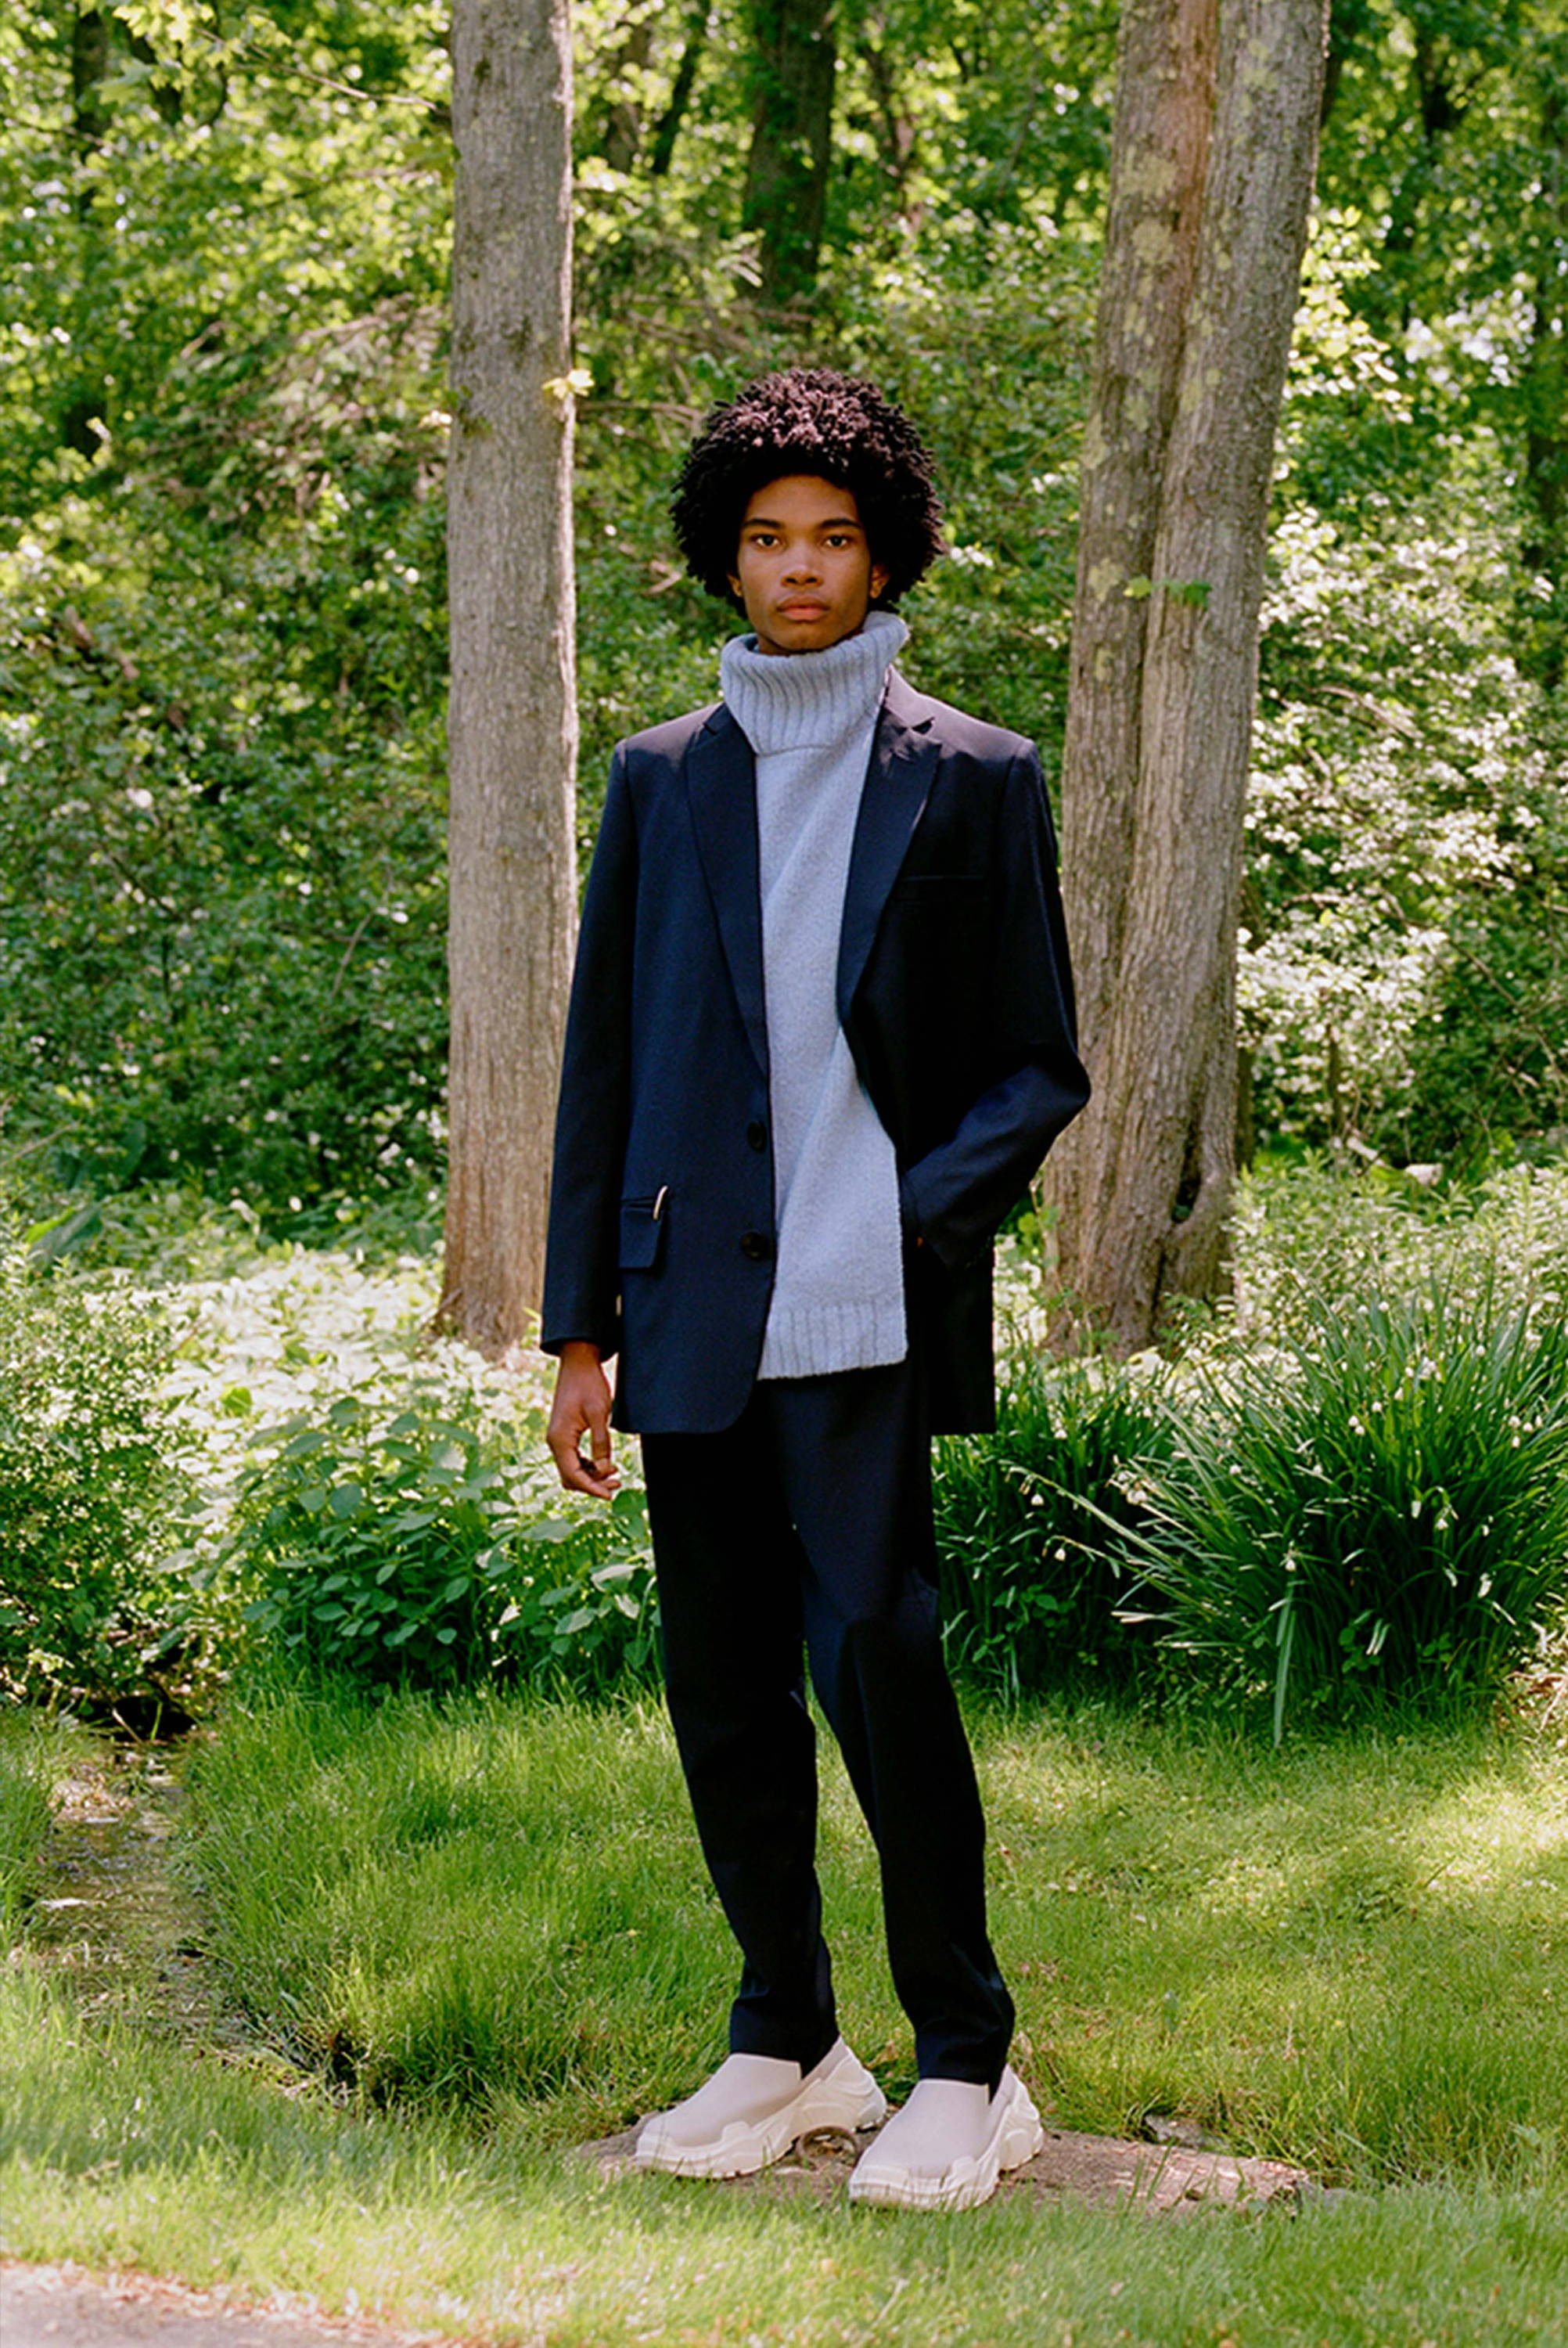 Male model standing on front of woods wearing blue turtleneck dickie and navy blue suit.